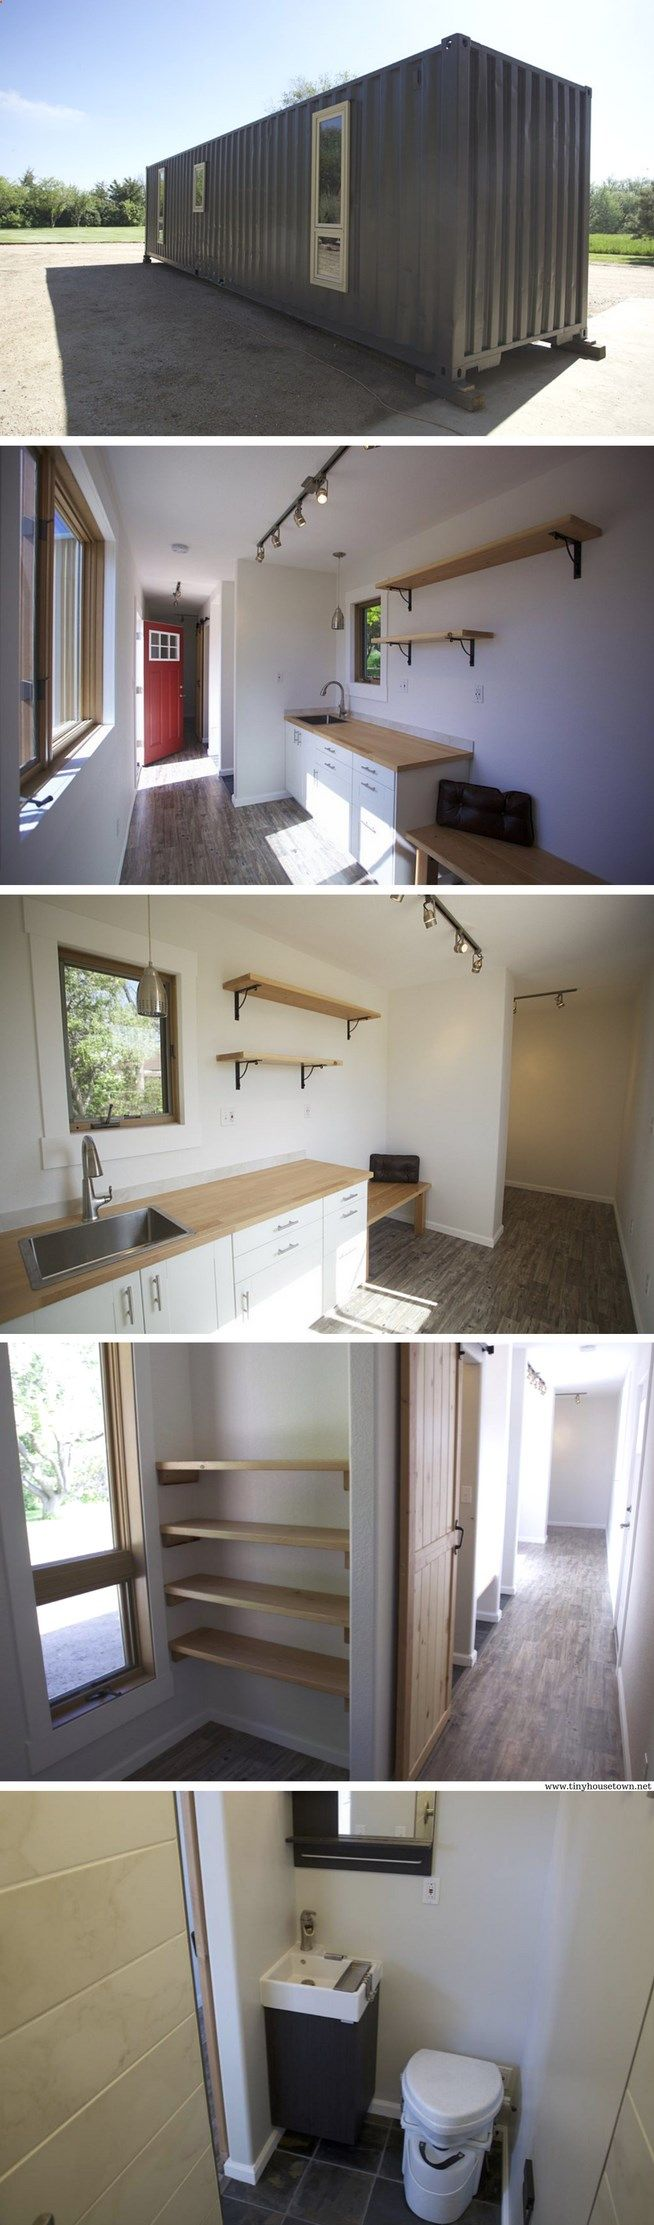 Shipping container homes living for the future earth911 com - Container House A 320 Sq Ft Shipping Container Home With Two Bedrooms Currently Available